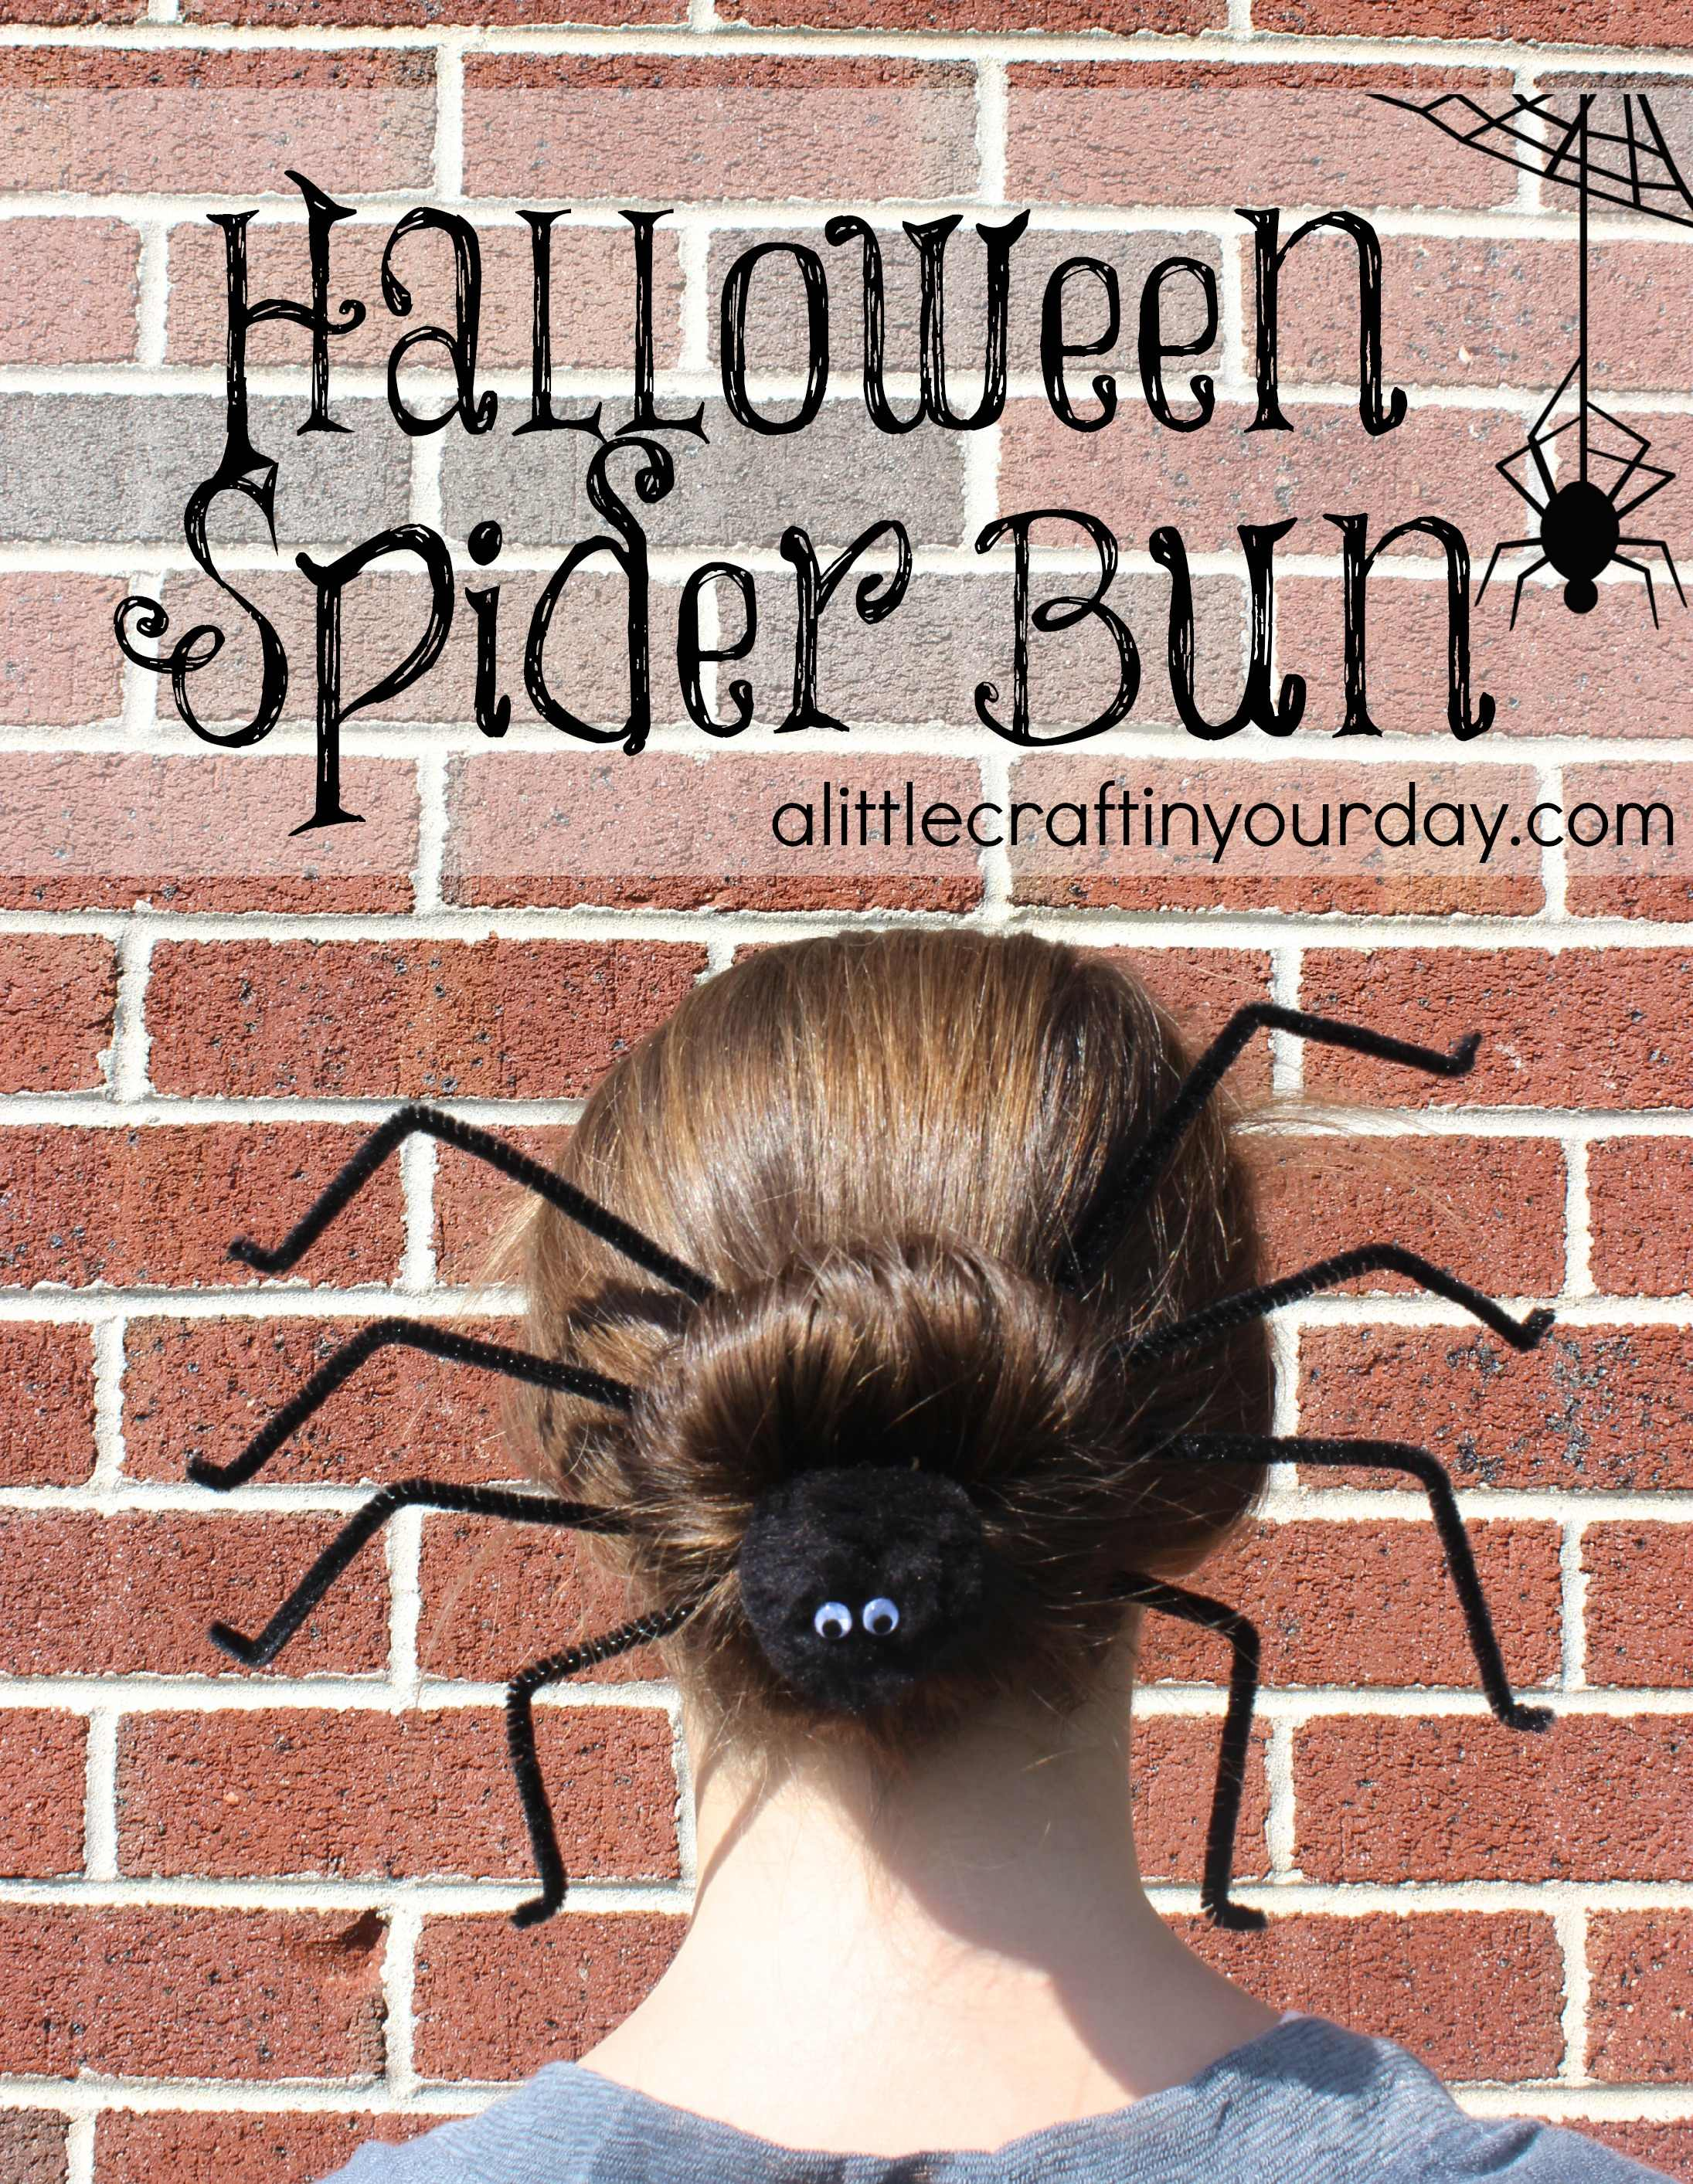 Spider Bun Tutorial